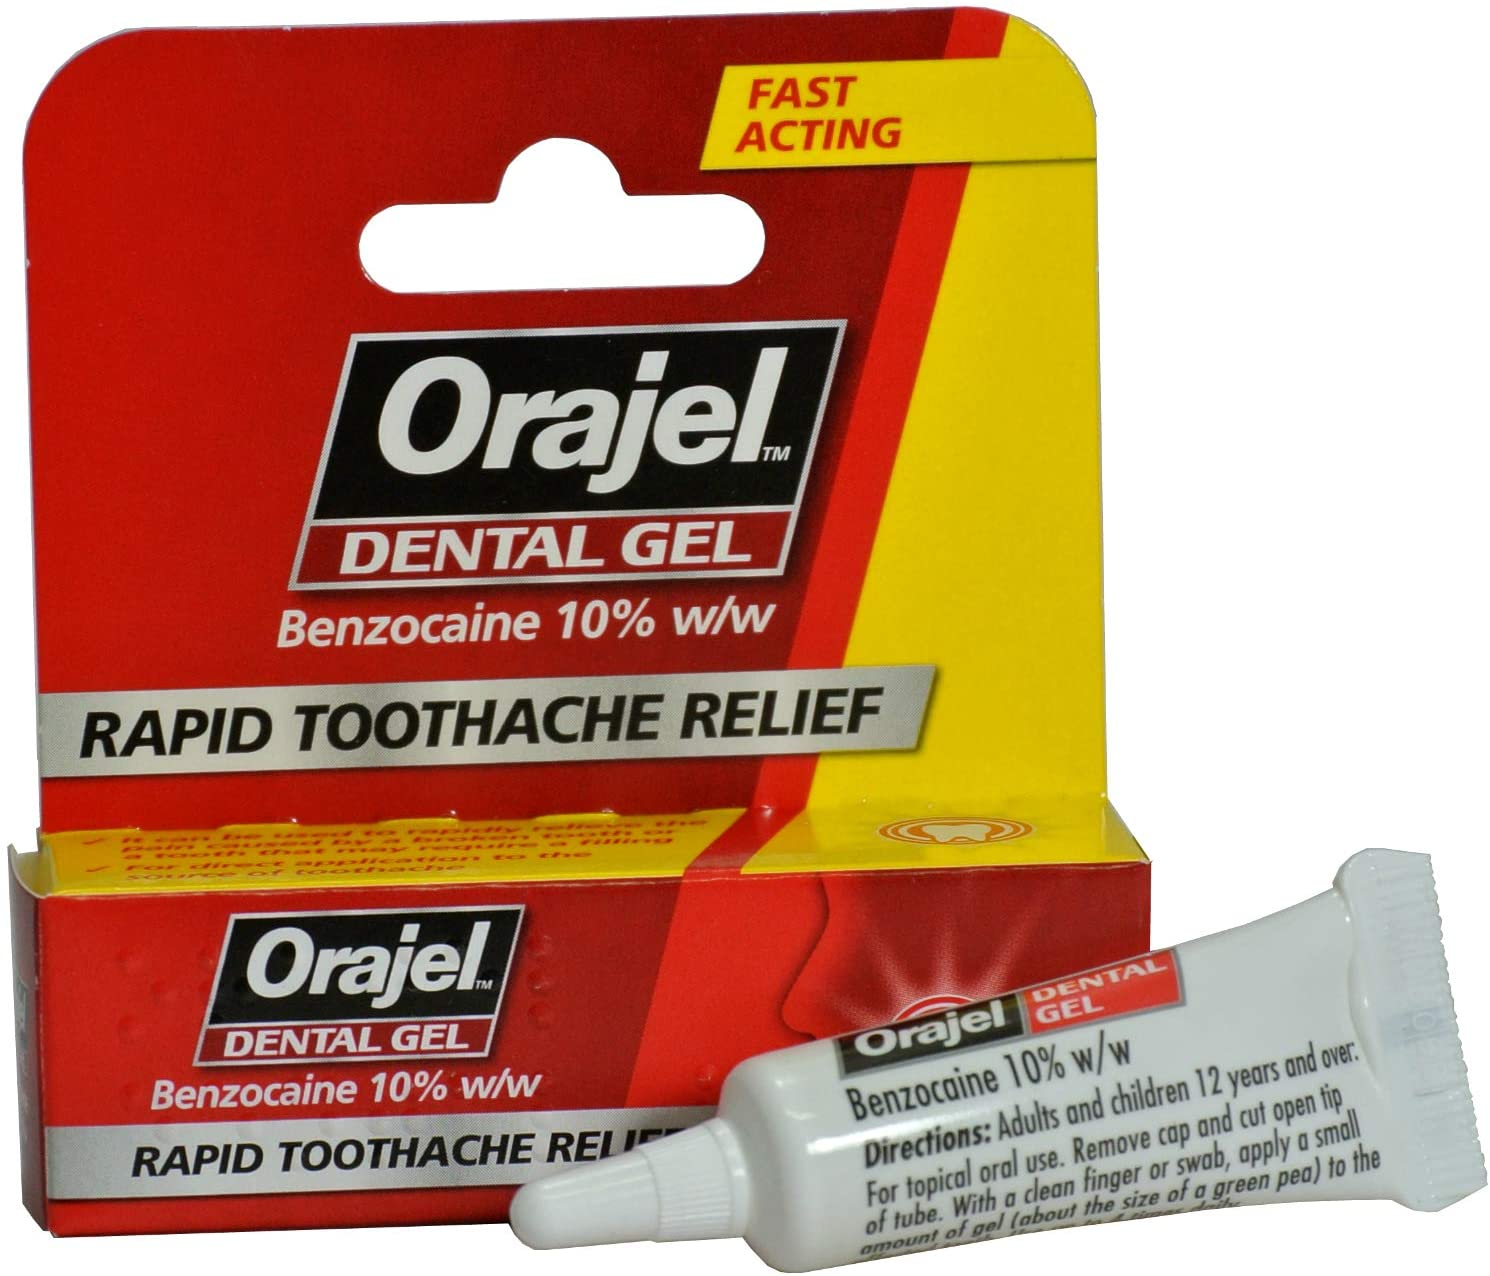 Orajel - Dental Gel